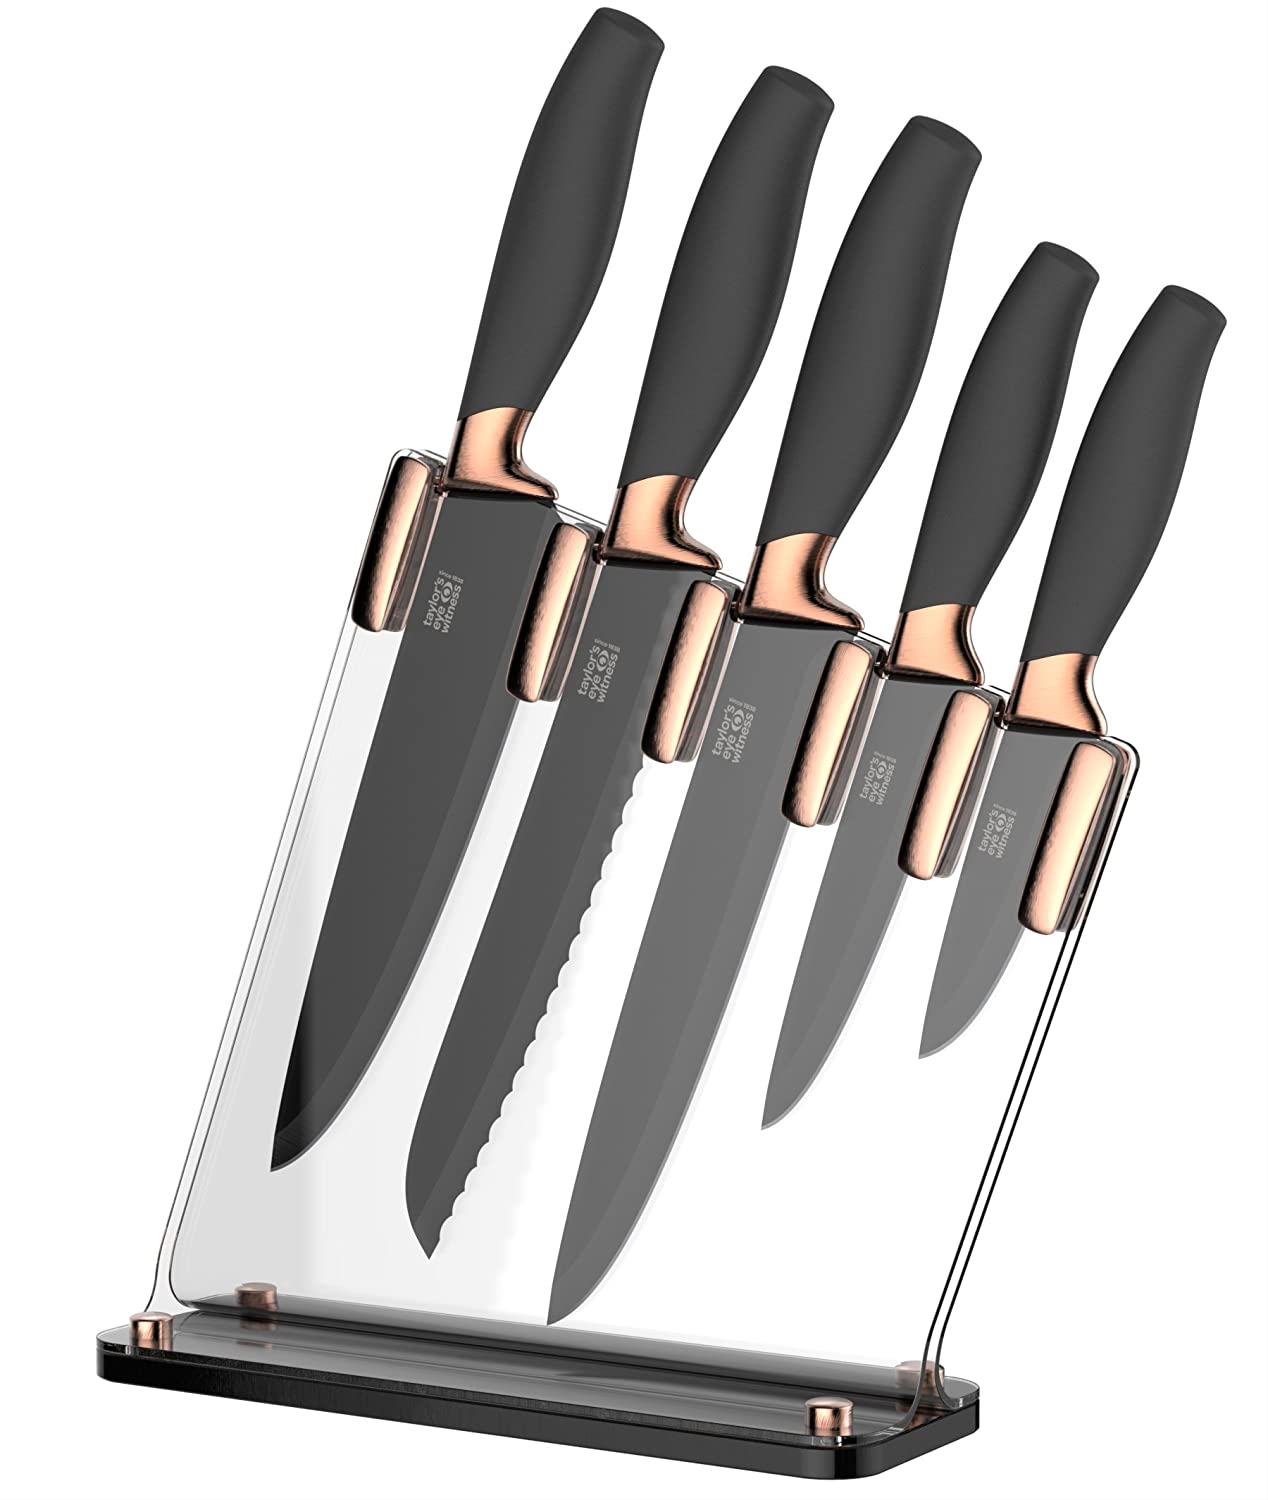 Taylors Eye Witness Brooklyn Copper 5 Piece Knife Block Set with ...